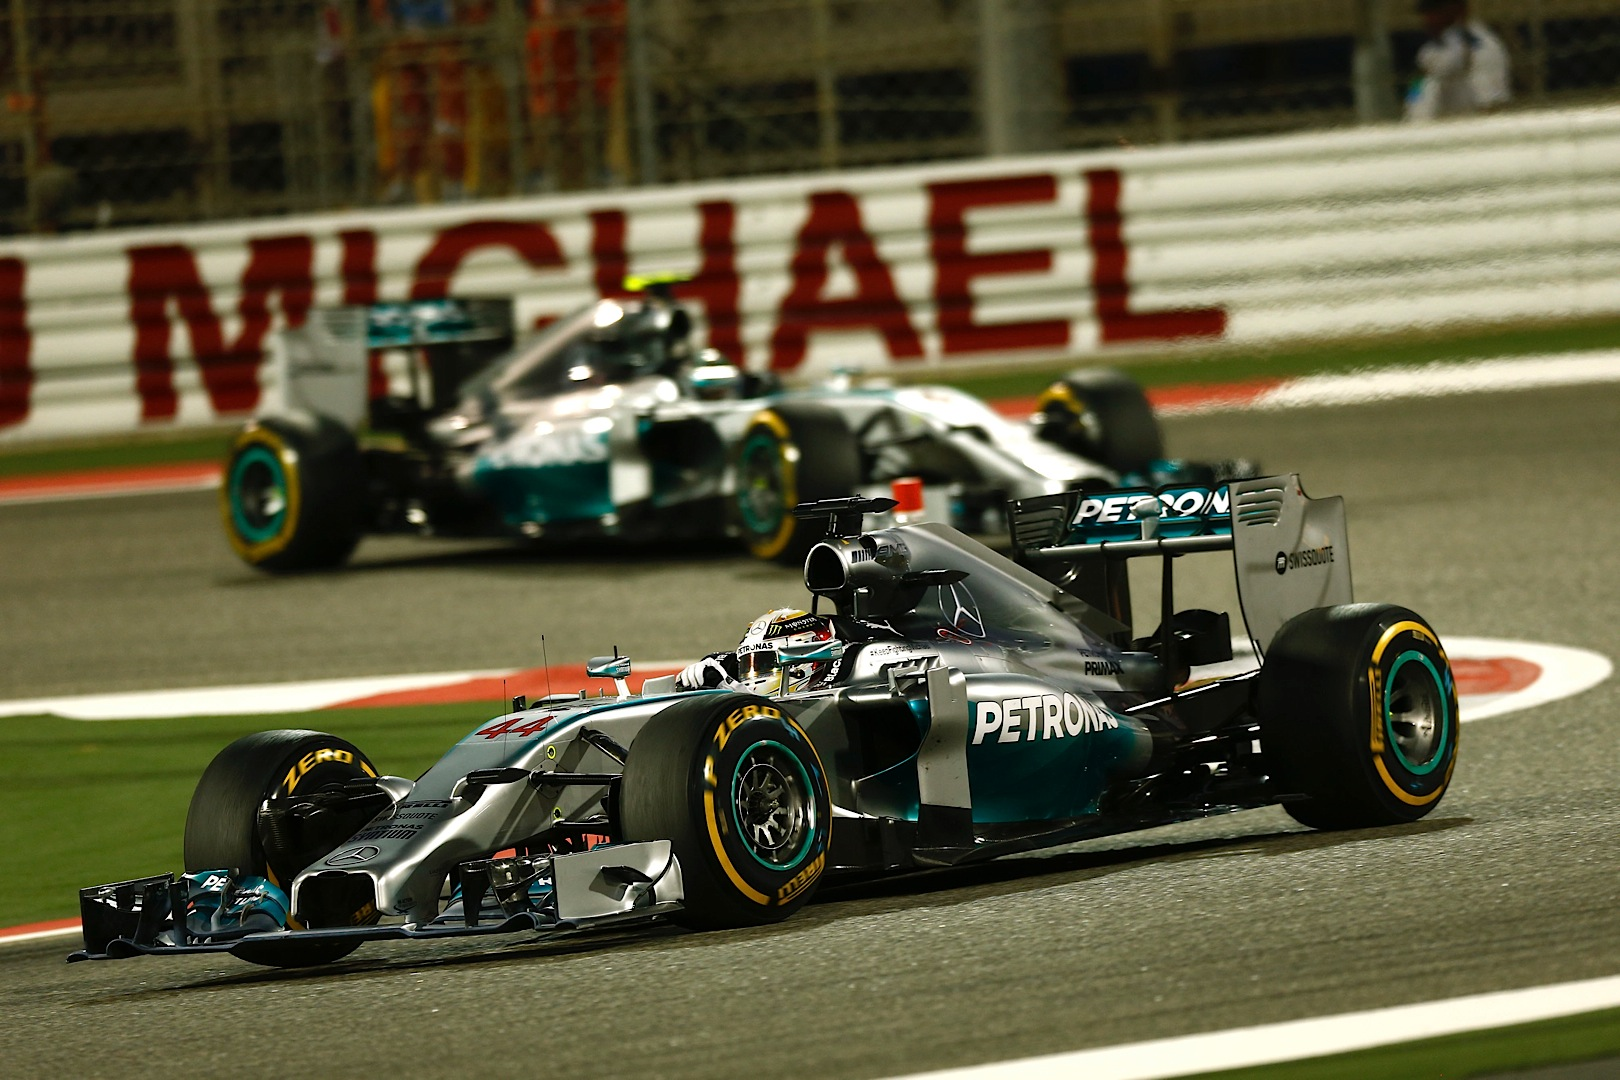 2014 chinese grand prix gets previewed by mercedes amg petronas autoevolution. Black Bedroom Furniture Sets. Home Design Ideas